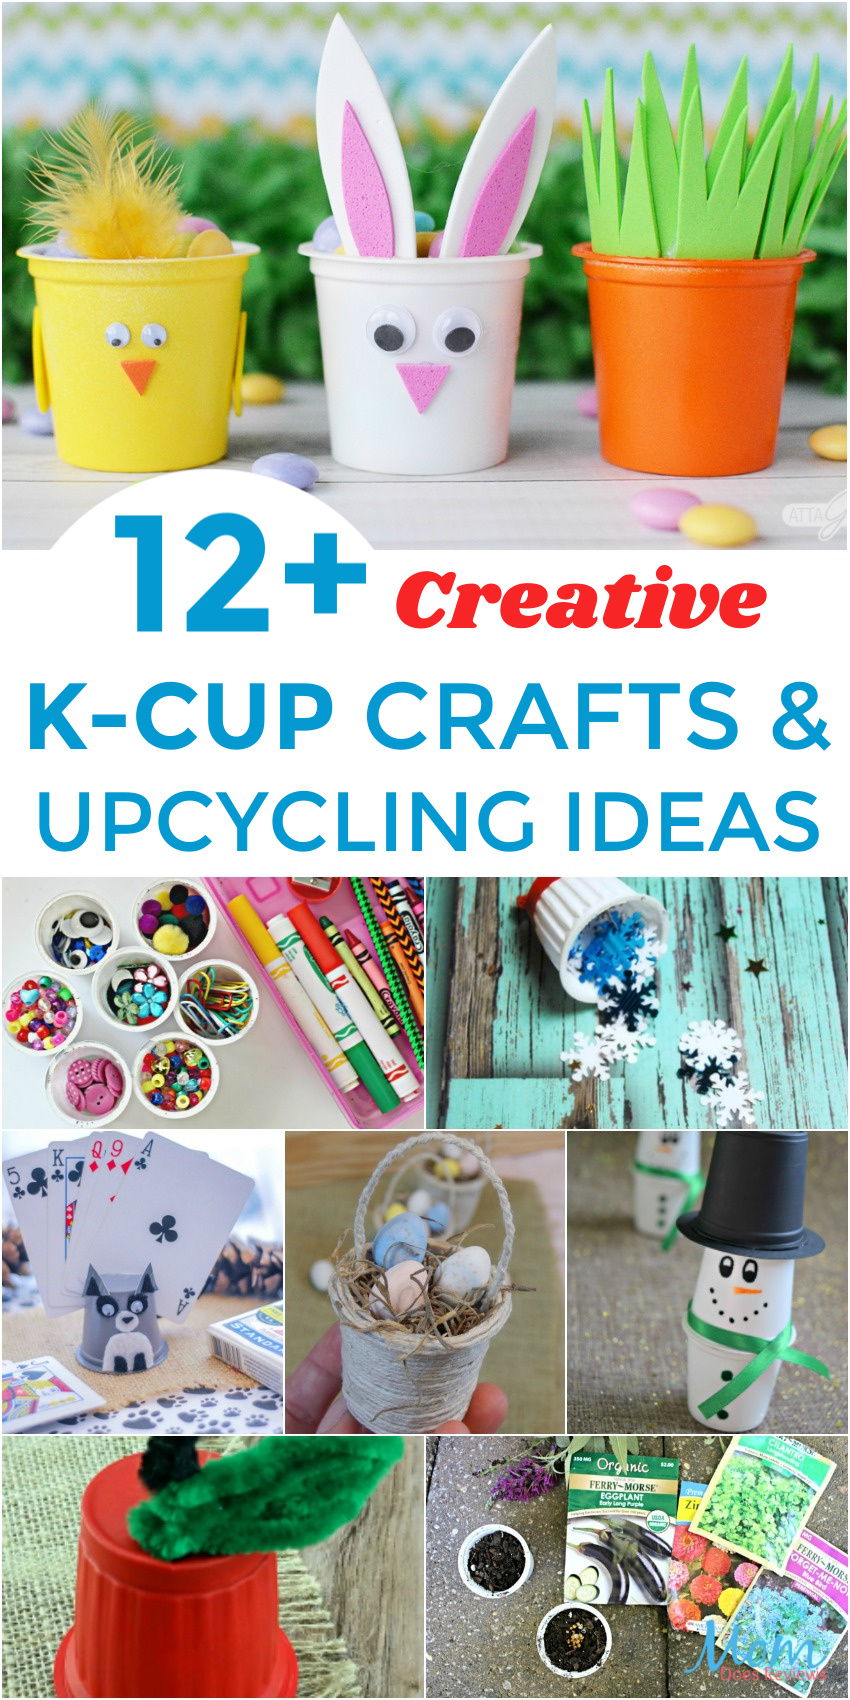 12+ Creative K-Cup Crafts and Upcycling Ideas #DIY #Upcycle #crafts